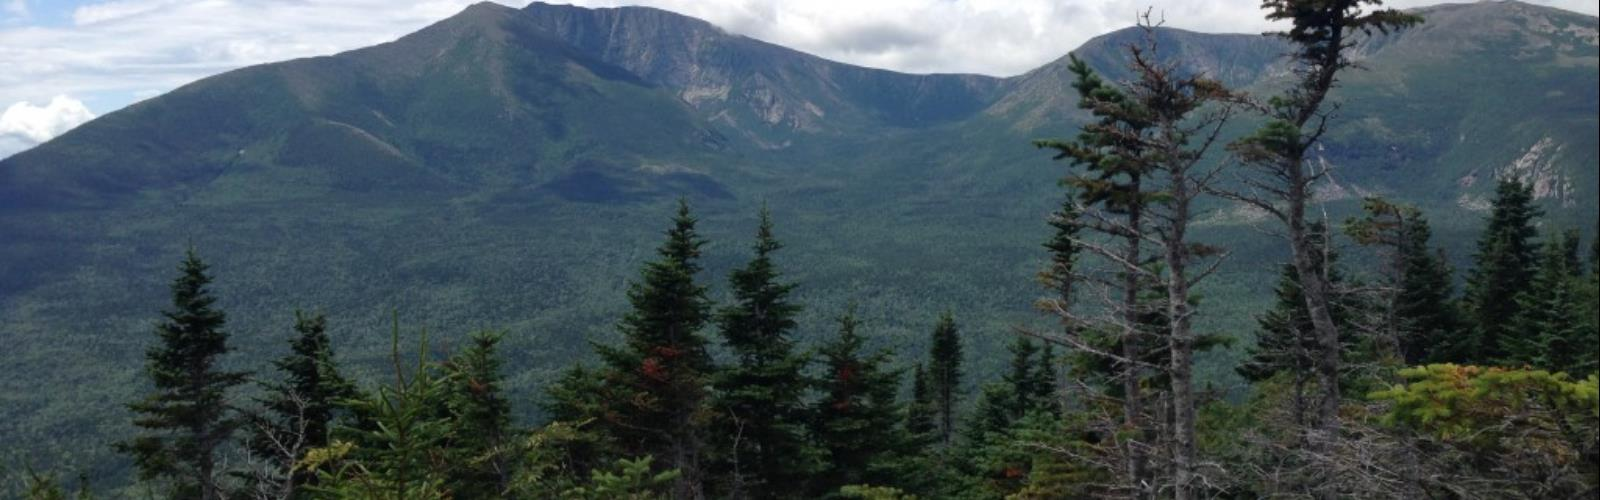 South Turner Mountain, Maine - Hiking